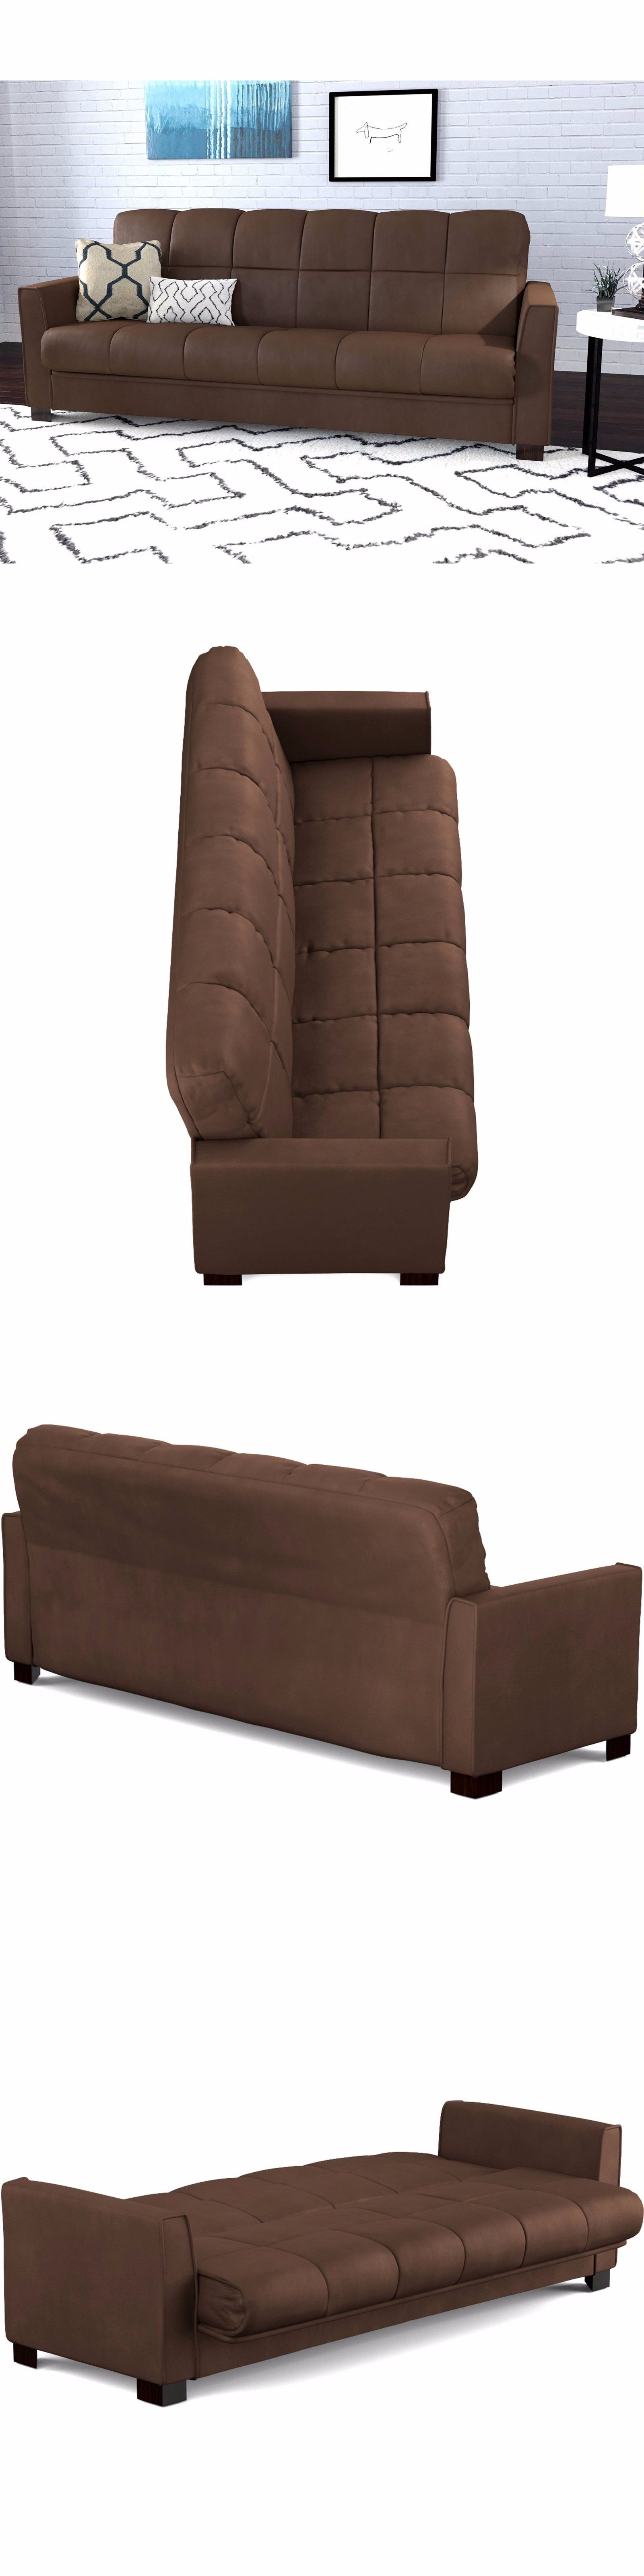 Sofas loveseats and chaises couch sofa sleeper living room